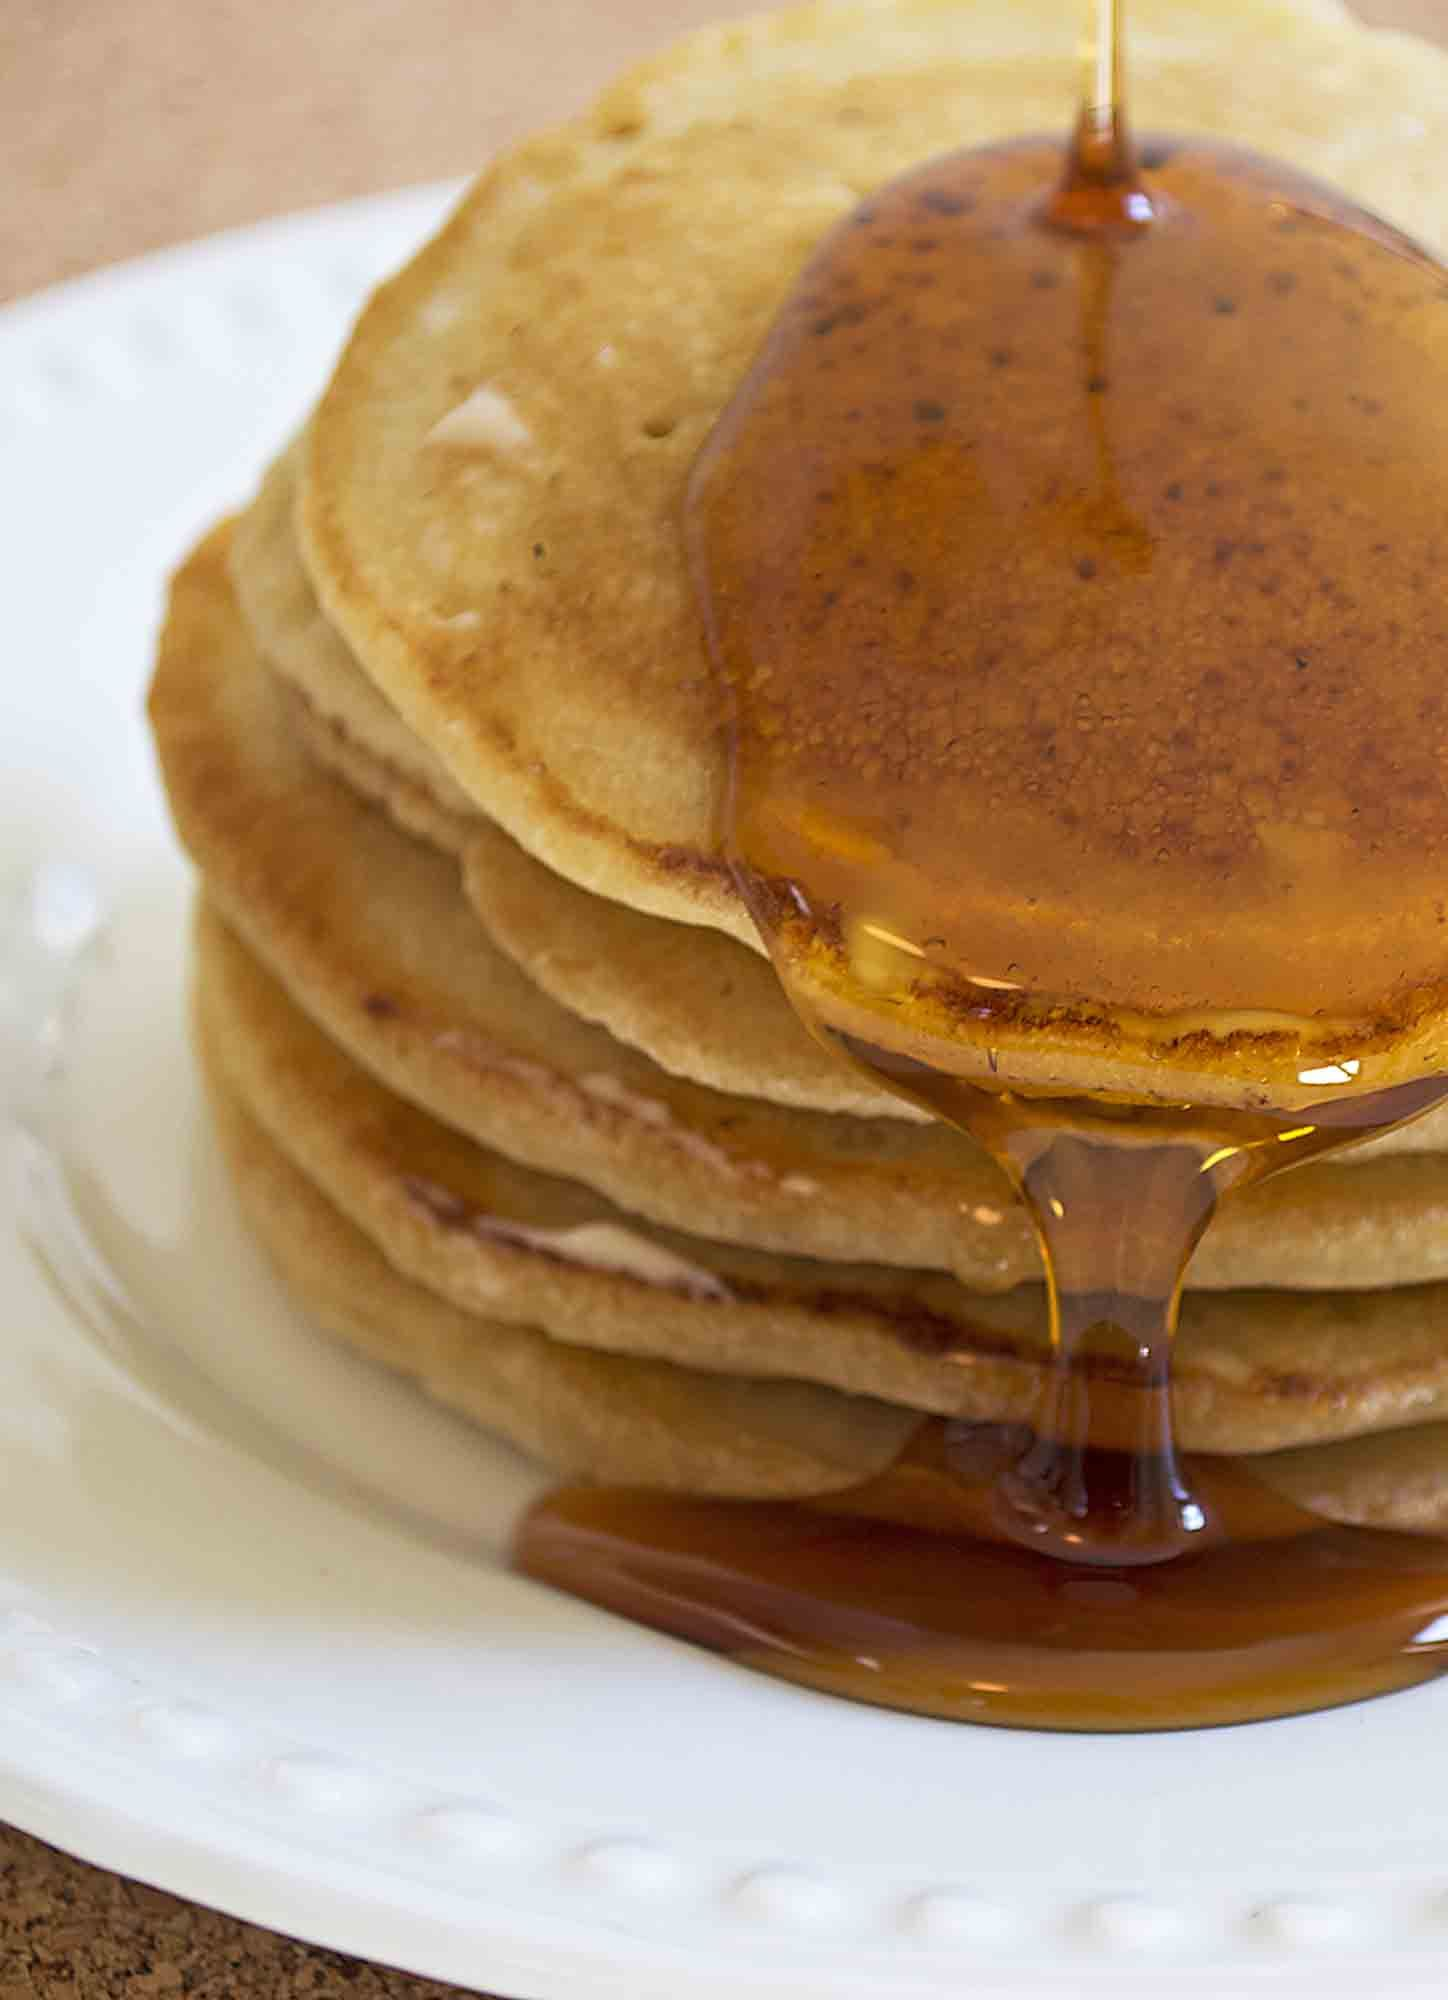 Vegan Pancakes - Breakfast is the most important meal of the day, and this awesome recipe for vegan pancakes will make it the best one too. Just add maple syrup and smile! www.vegandaydream.com